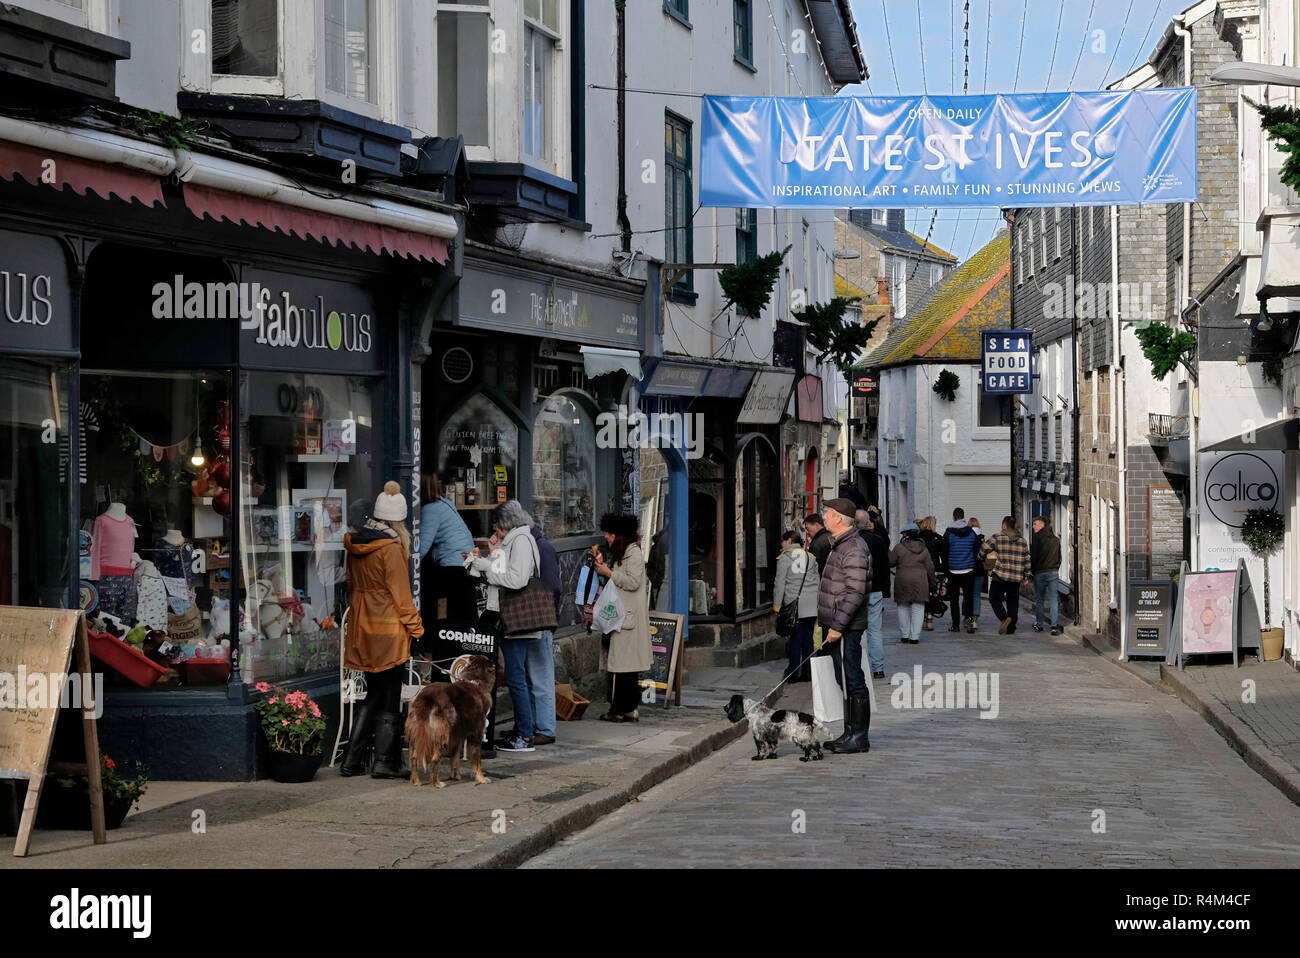 St.Ives, Cornwall, UK, narrow street scenes Stock Photo